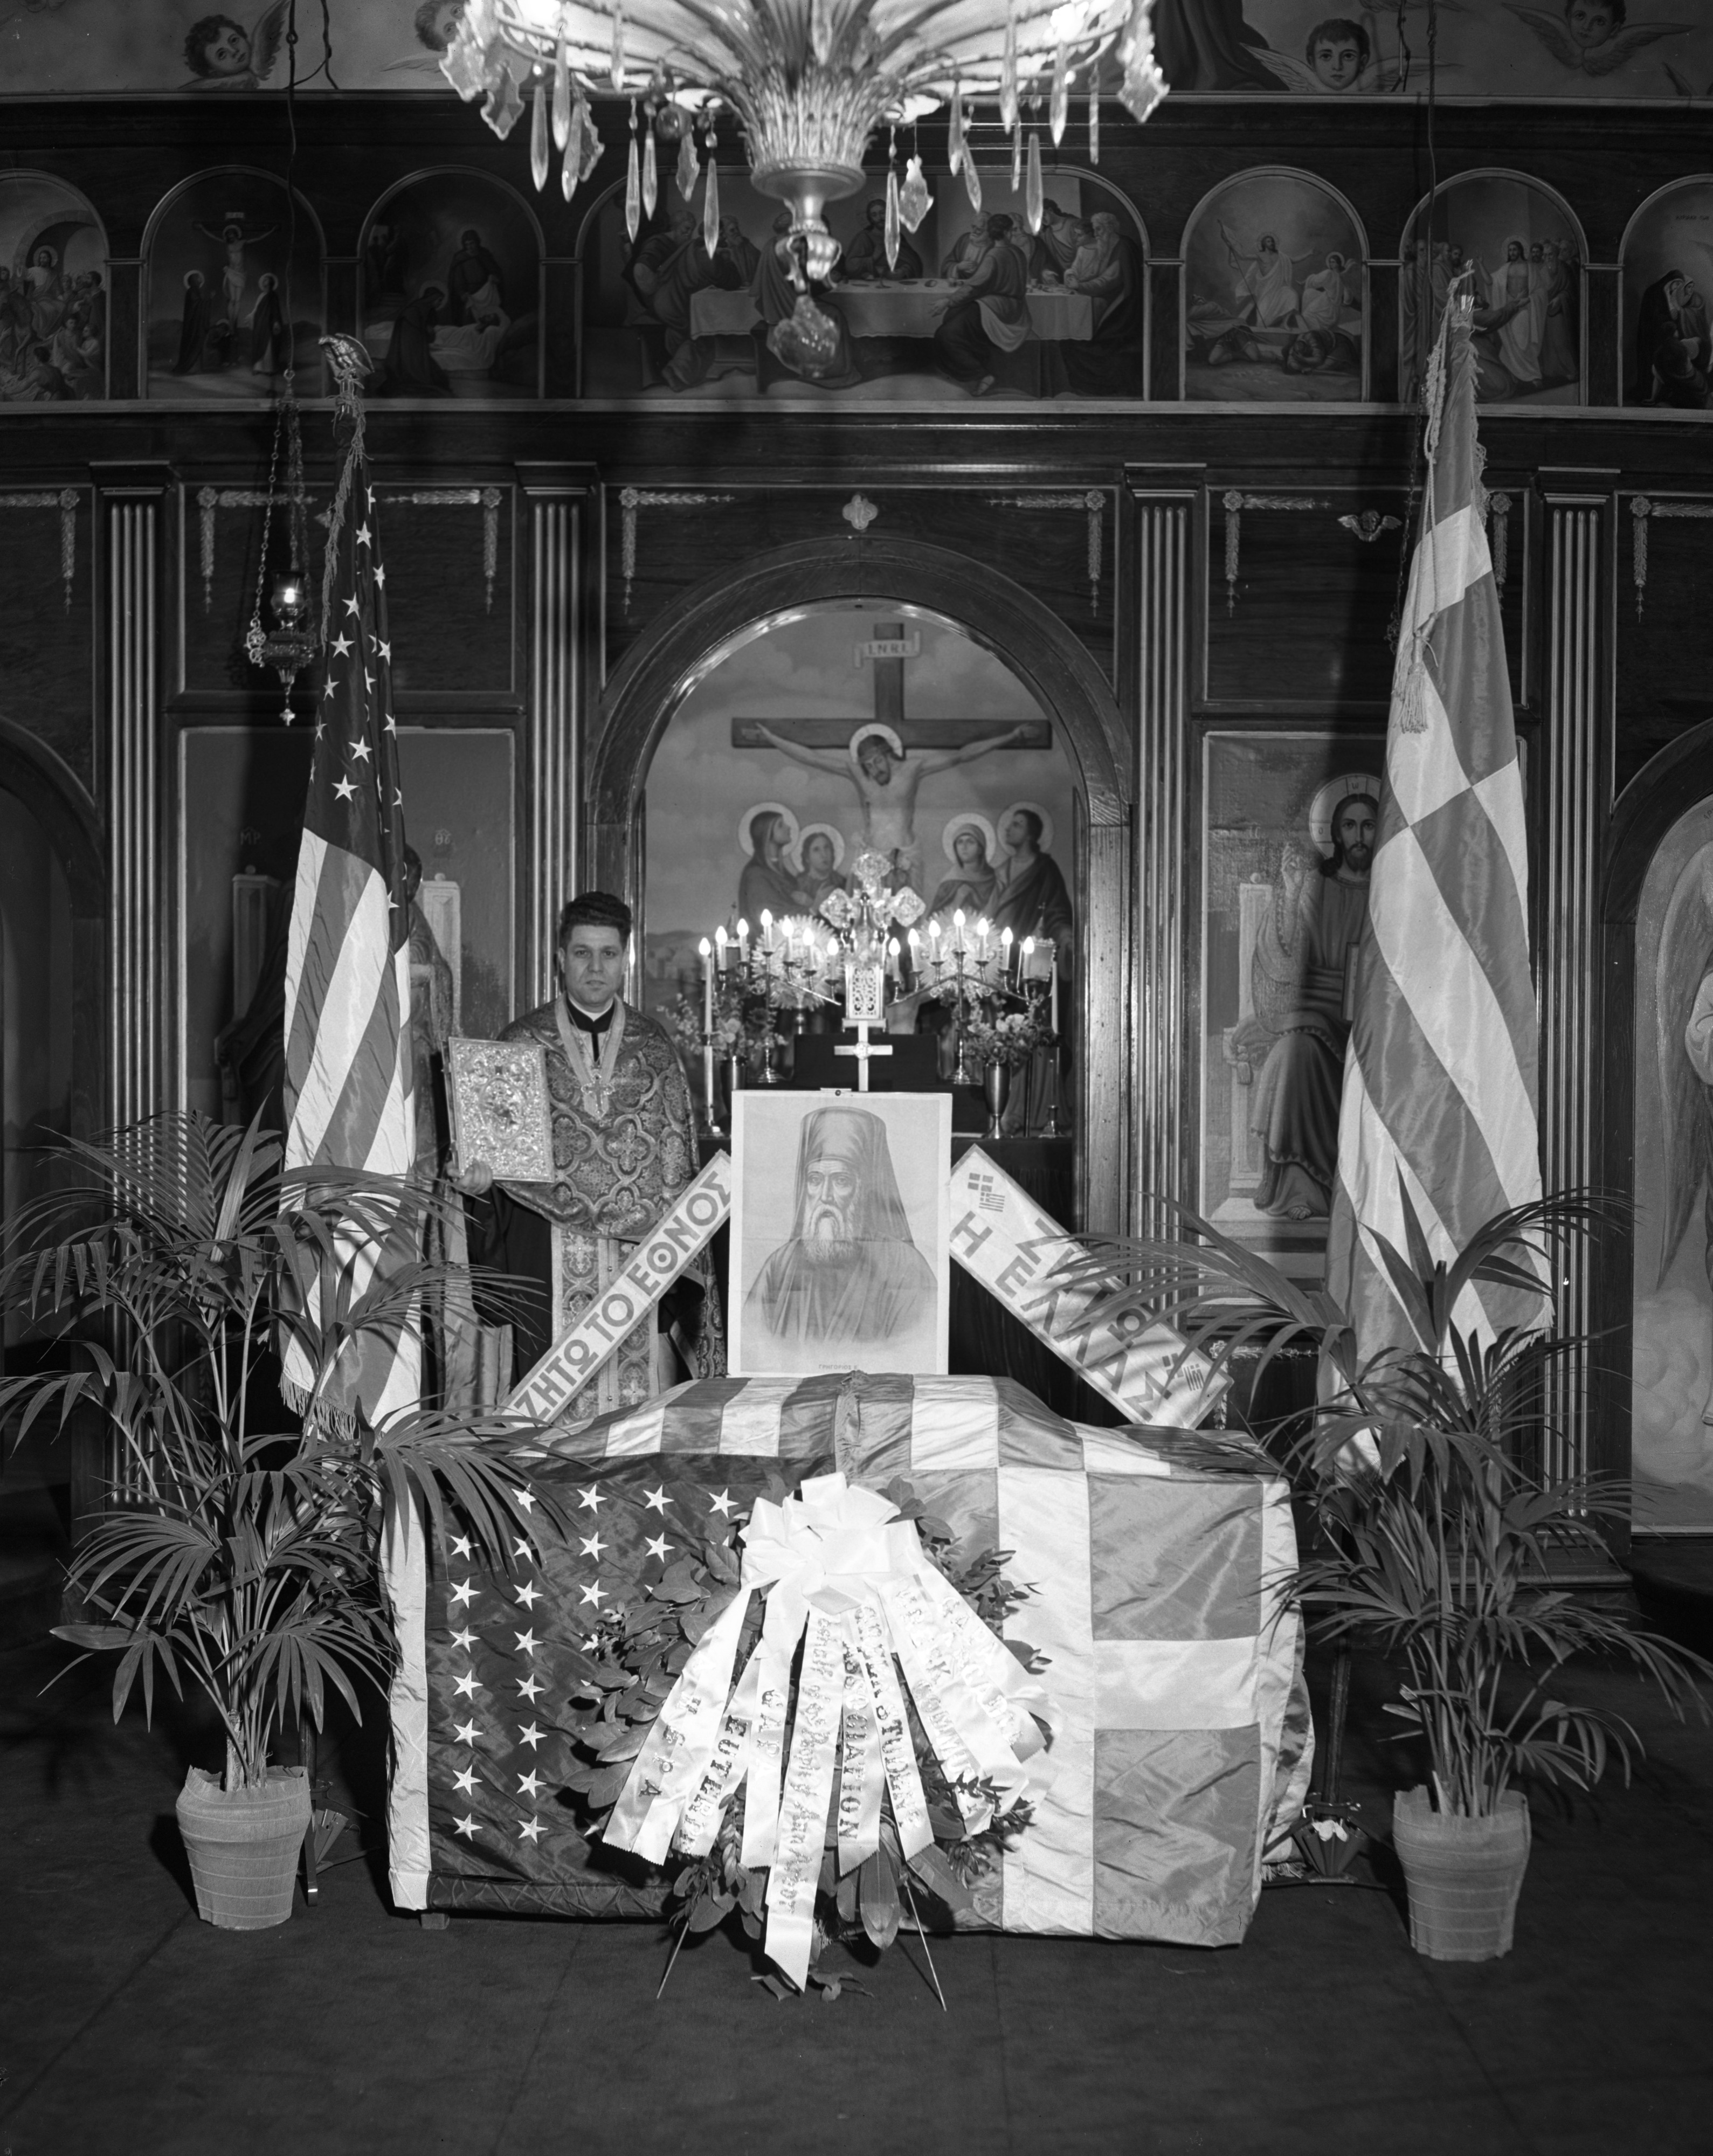 St. Nicholas Church's Greek Independence Day Decorations, March 1953 image